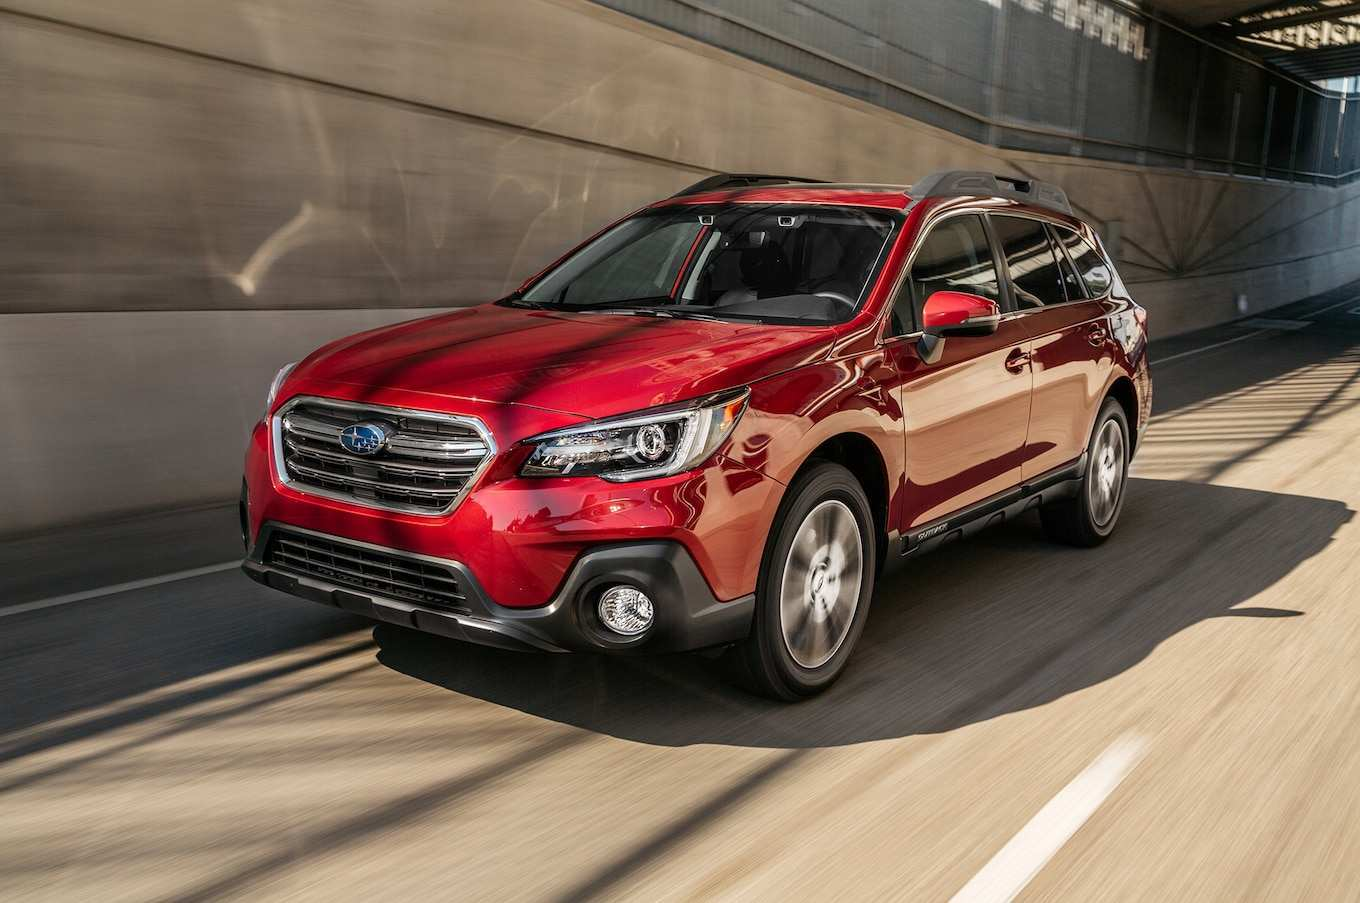 53 New Best Subaru Outback 2019 Canada Review Price with Best Subaru Outback 2019 Canada Review